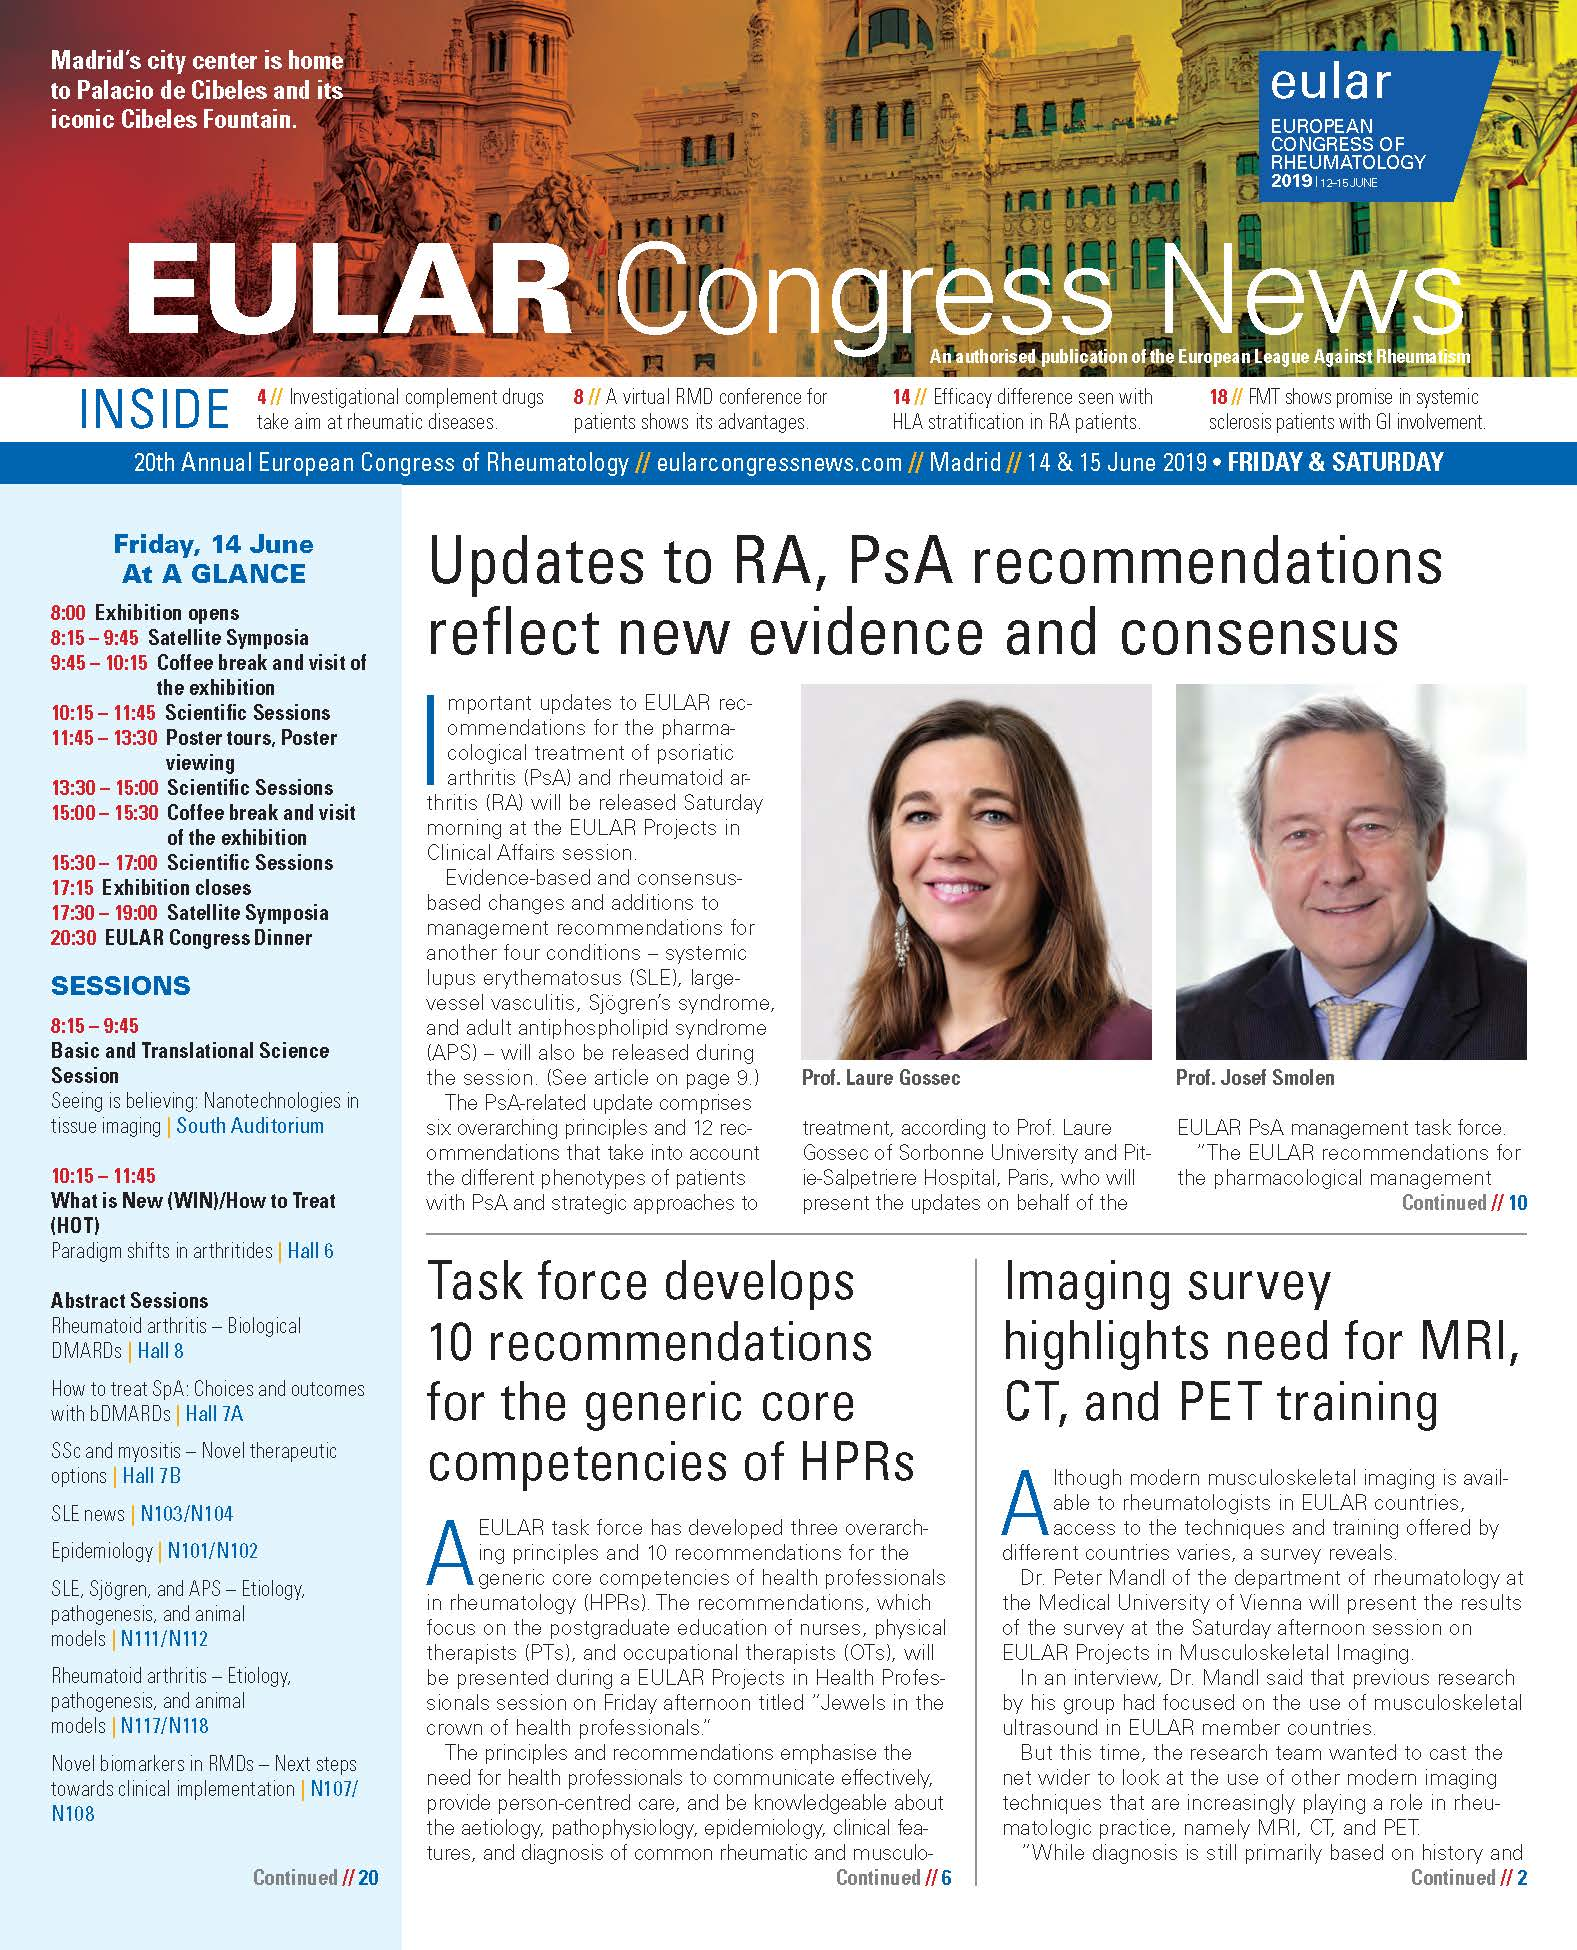 EULAR Congress News: Friday/Saturday - 14/15 June Edition